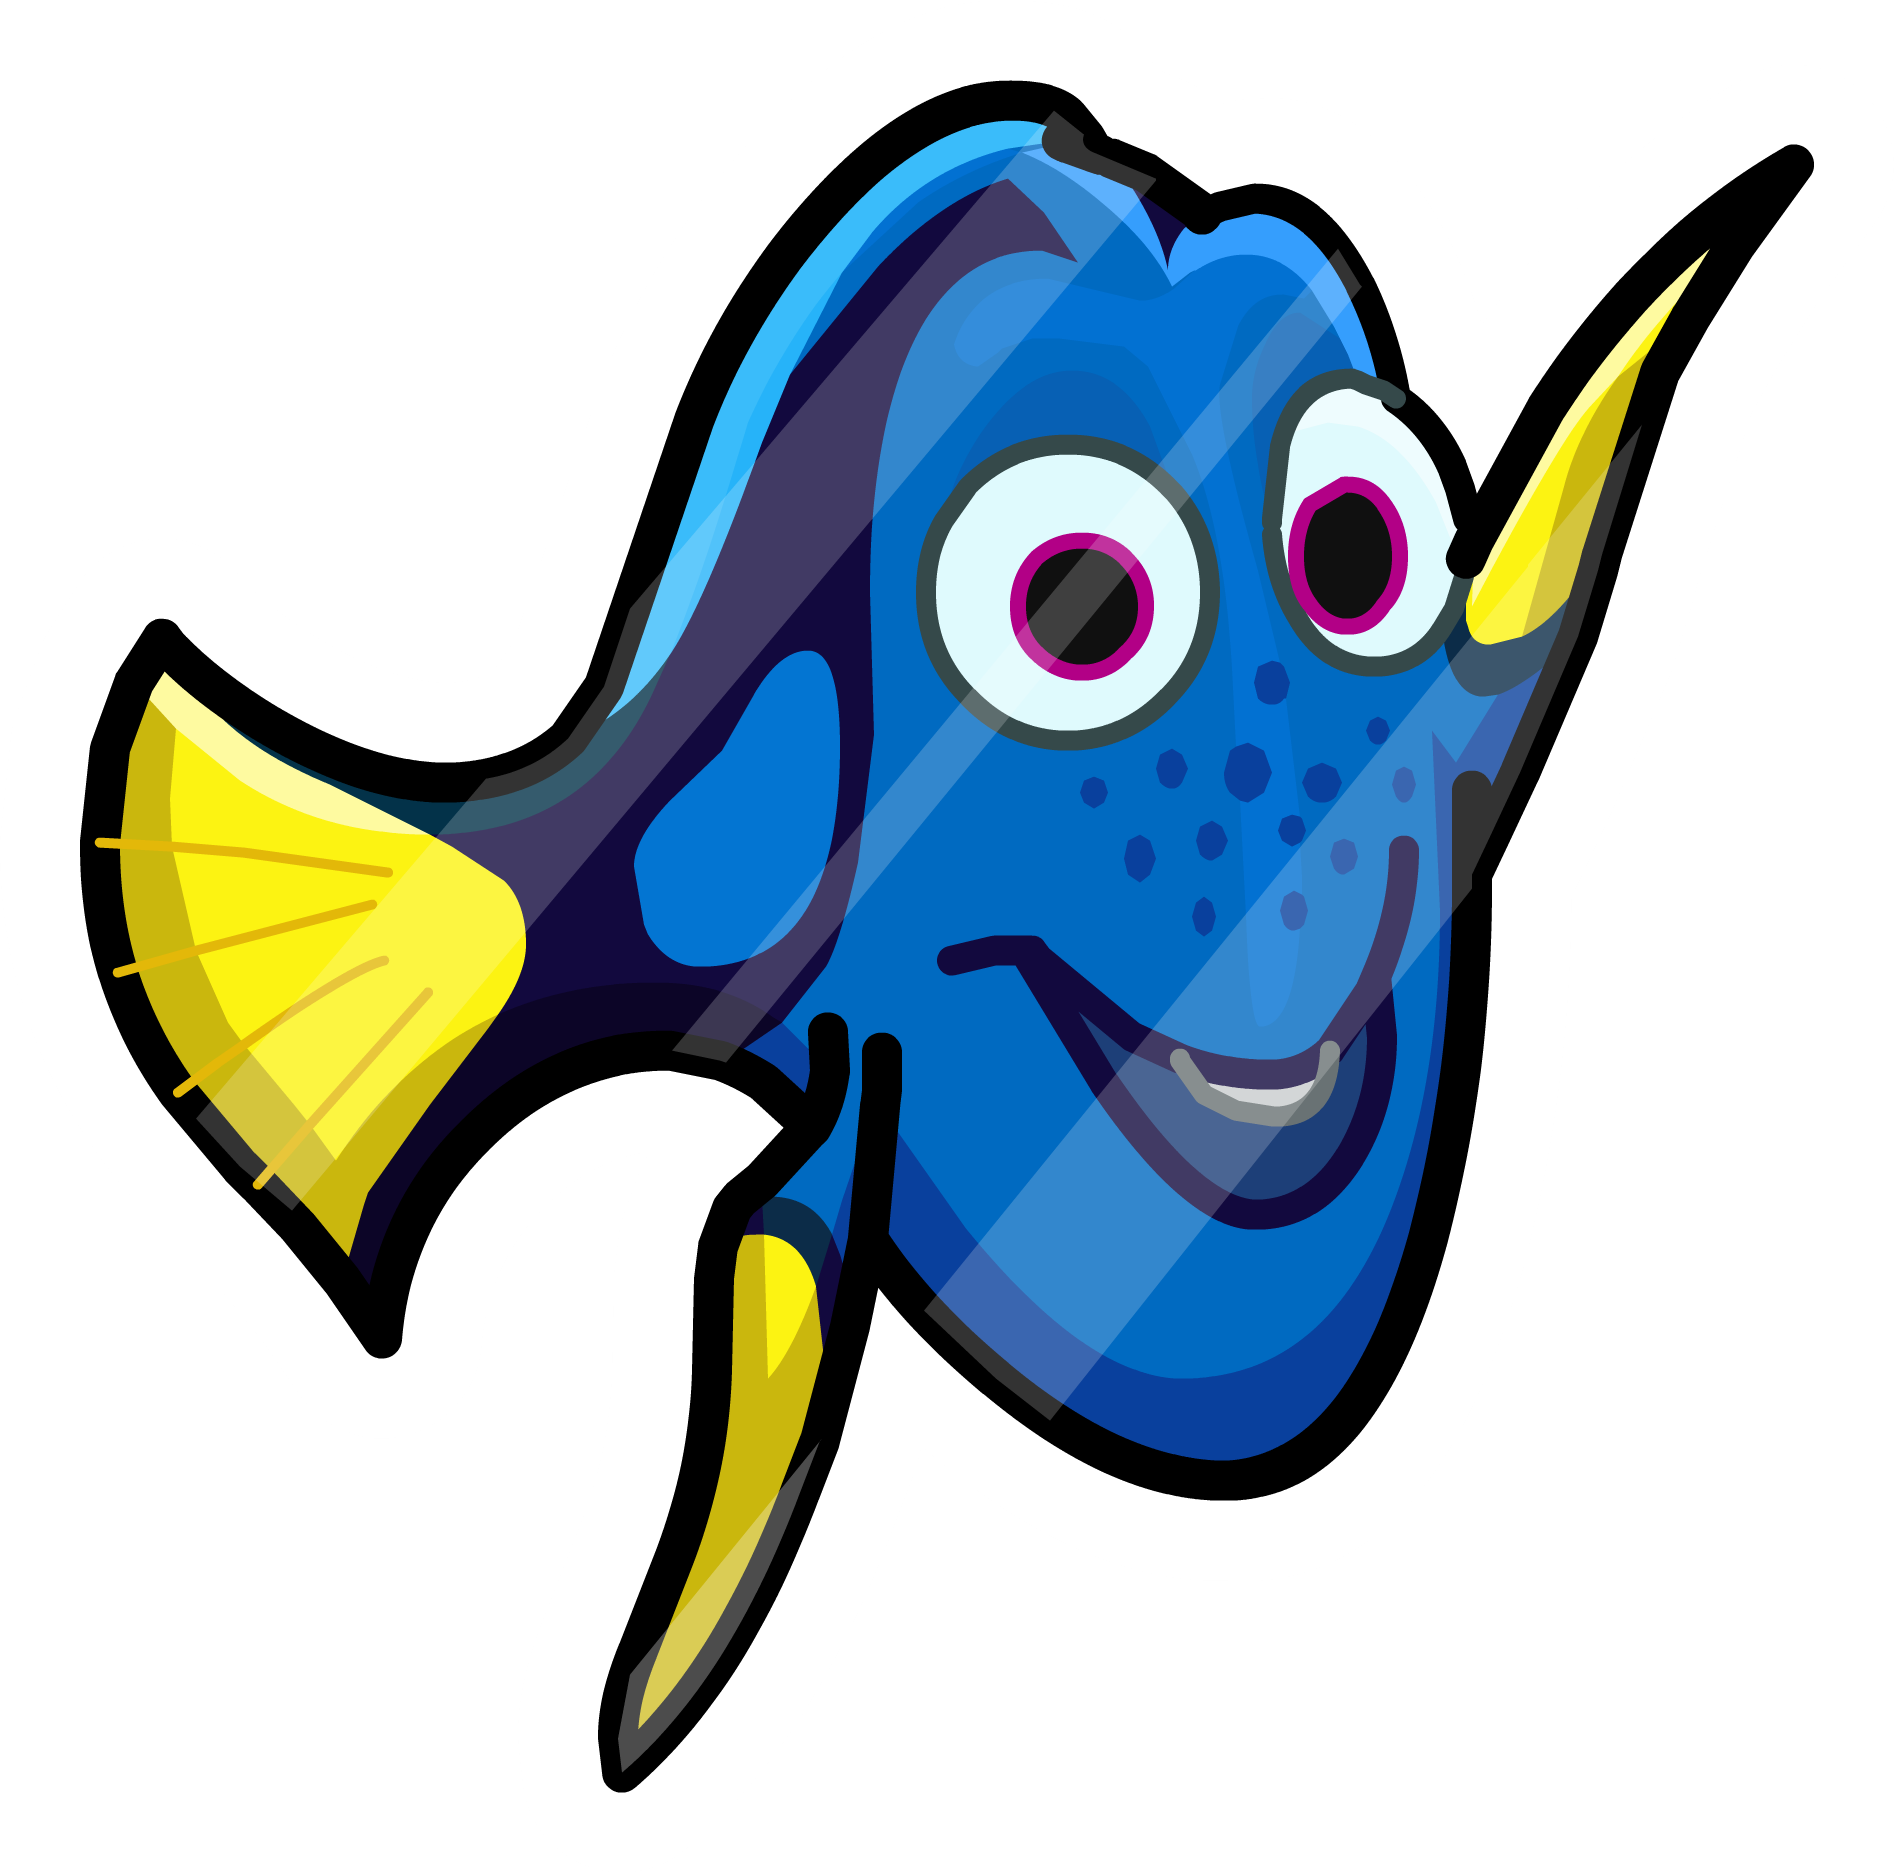 1894x1873 Finding Dory Party Interface Club Penguin Wiki Fandom Powered